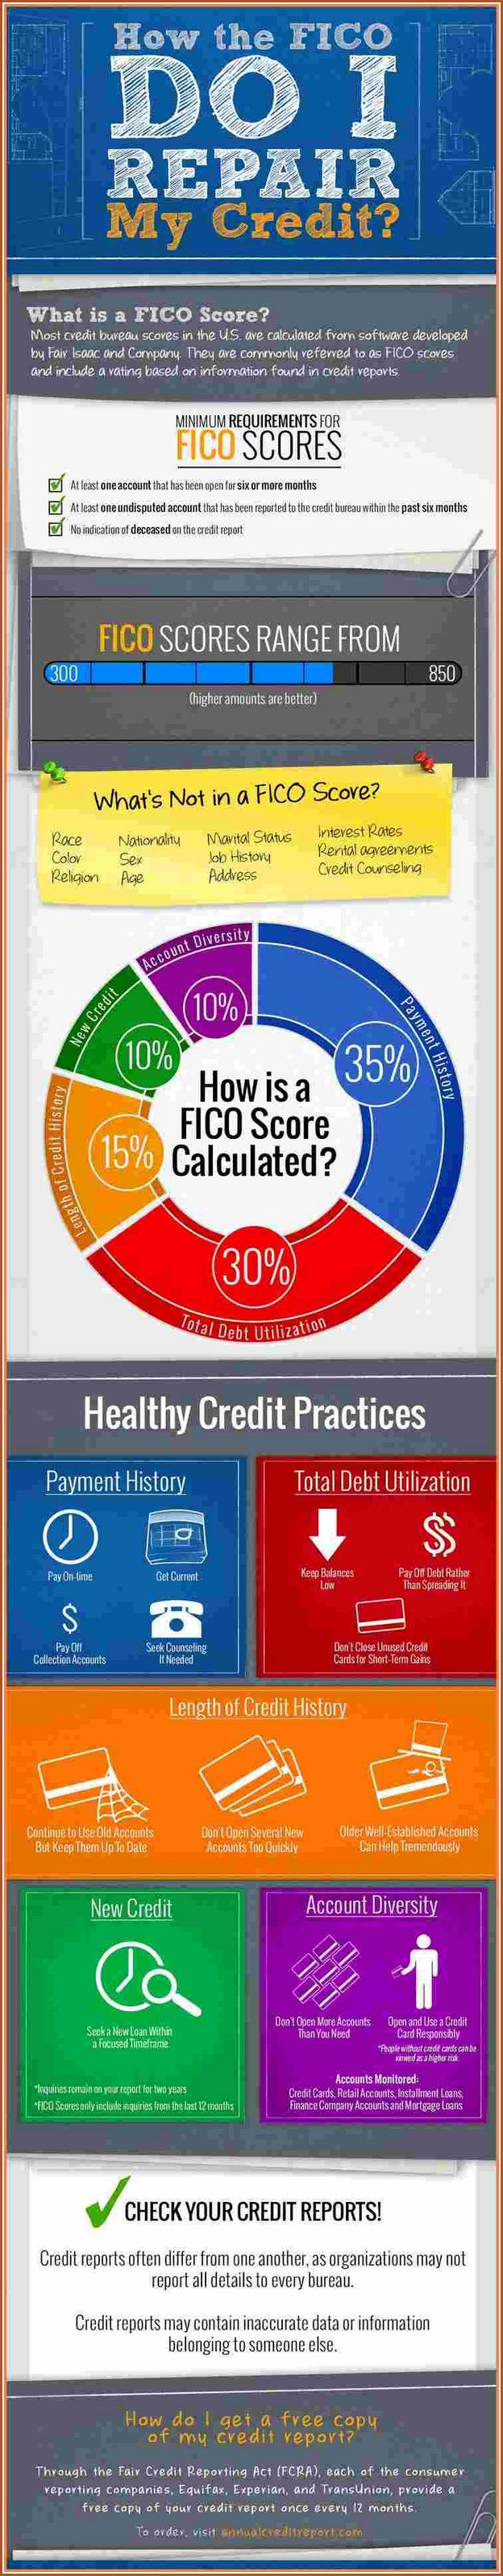 Will Checking My Credit Score Lower It